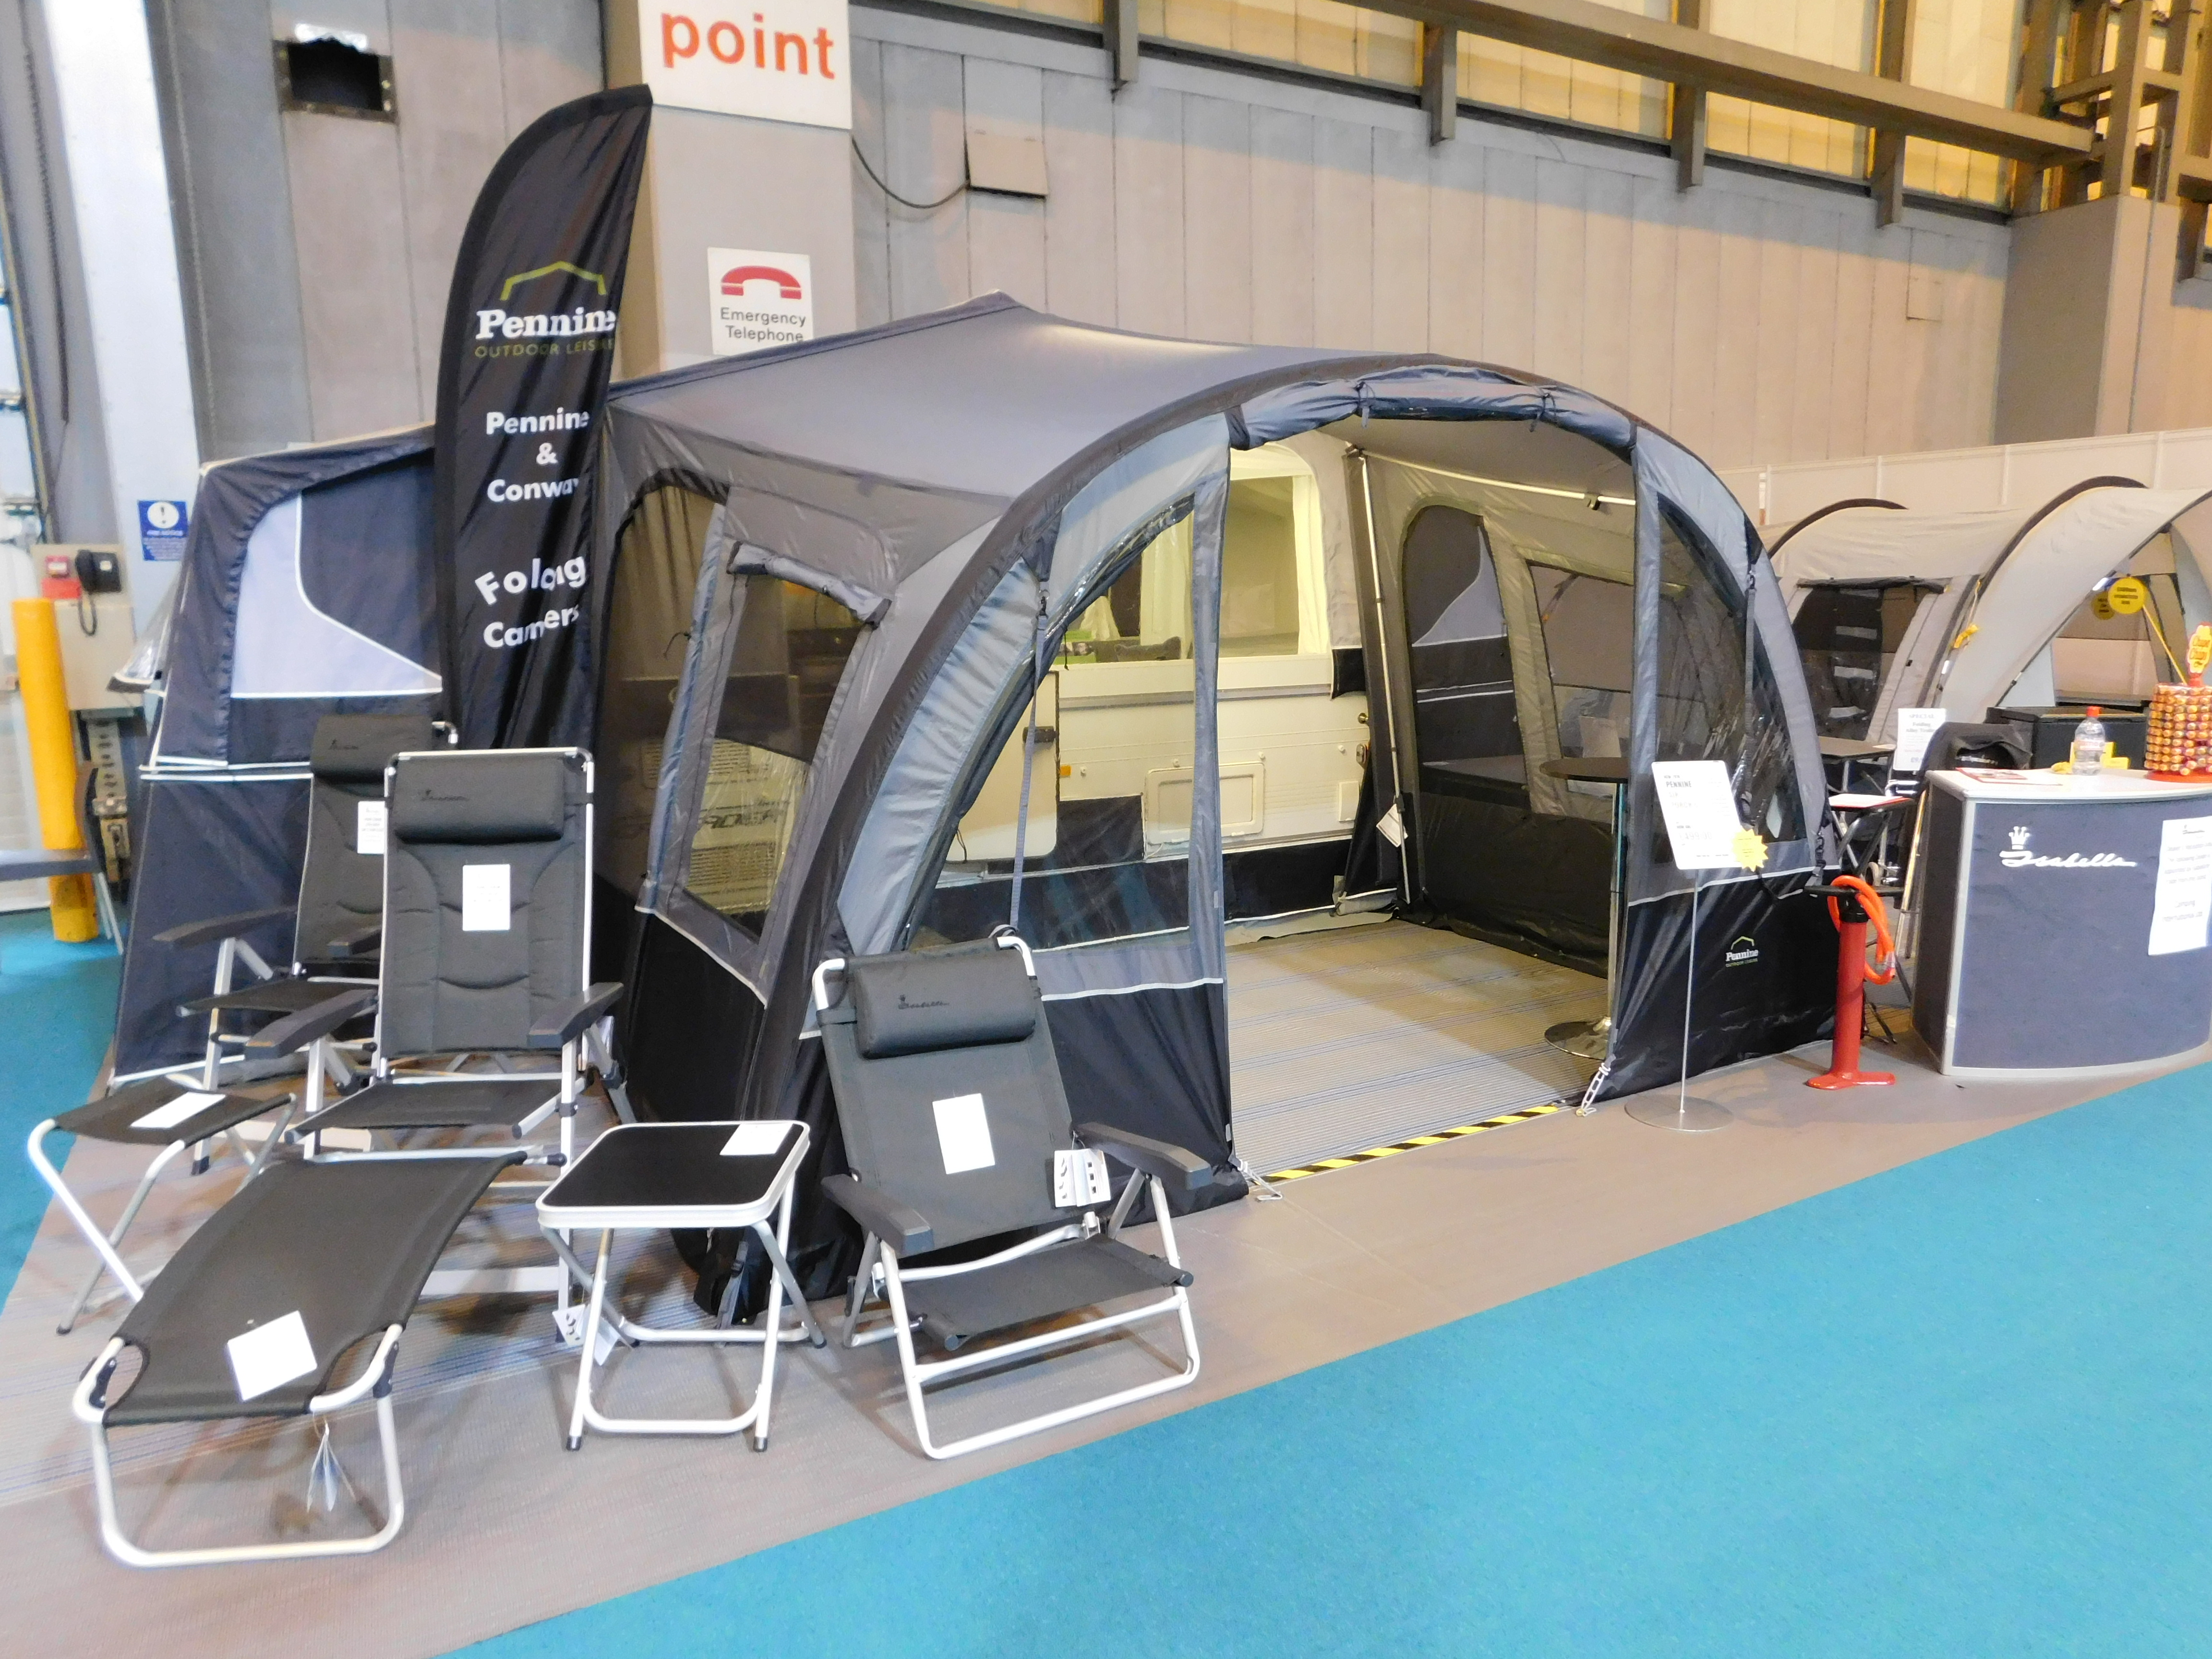 Model Camping And Motorhome Show, Heading Towards Birminghams NEC From 21 To 26 February Ben Together With His Dog Storm Celebrated The Great Outdoors With A Caravan, A Variety Of Tents And Camping Gadgets, Motorhomes And Even A